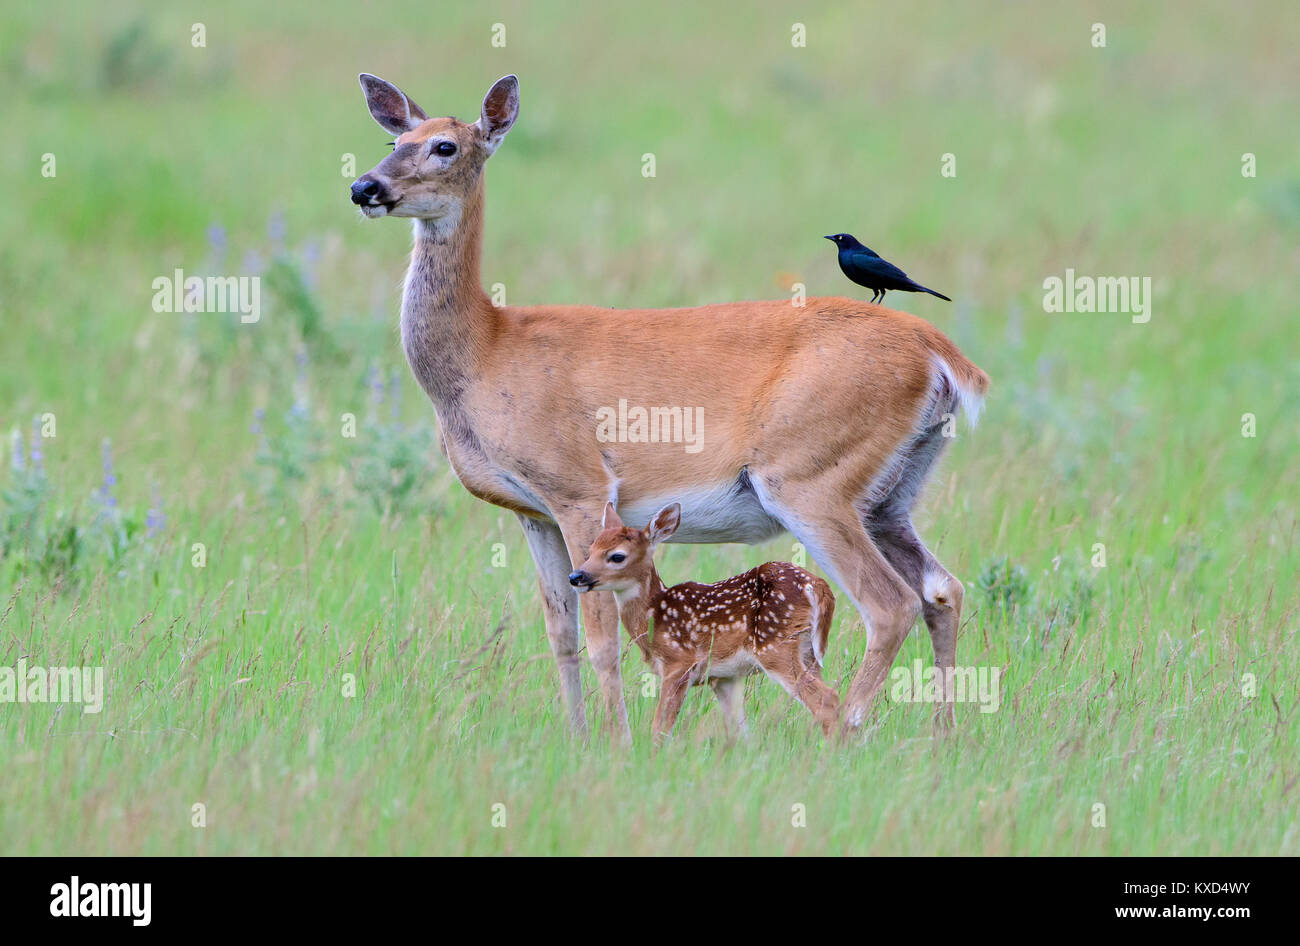 White-tailed deer doe and fawn (Odocoileus virginianus), North America - Stock Image